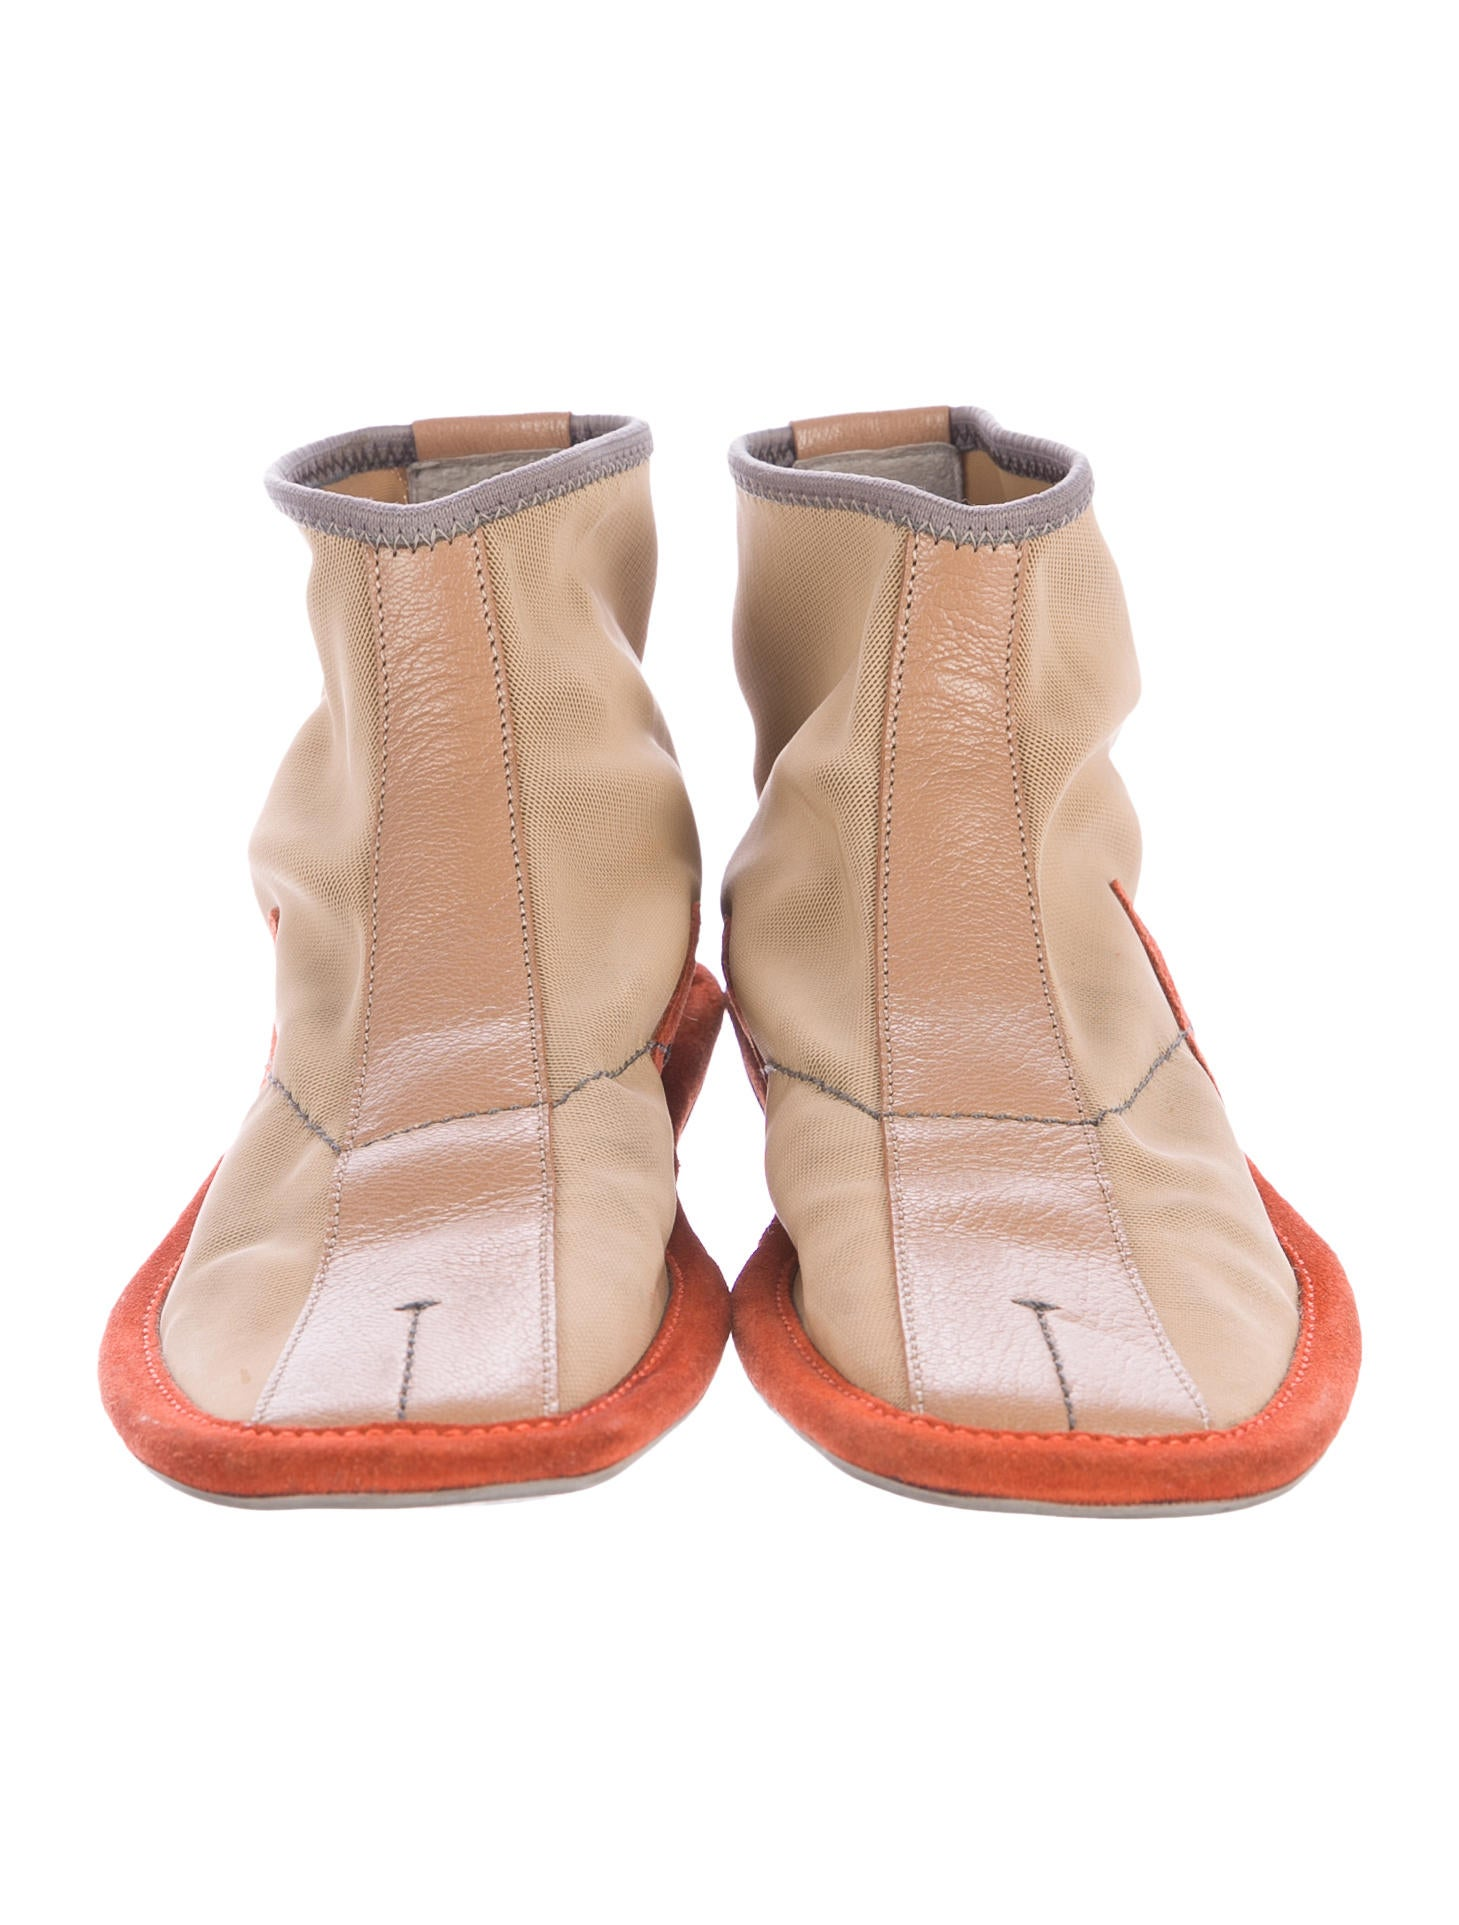 Women's Ankle Boots. A shoe collection is not complete without at least one pair of ankle boots. Our curation of women's ankle boots offers a combination of flats and heels perfect to take you from daytime strolls to night time dinners (and plenty of dancing).